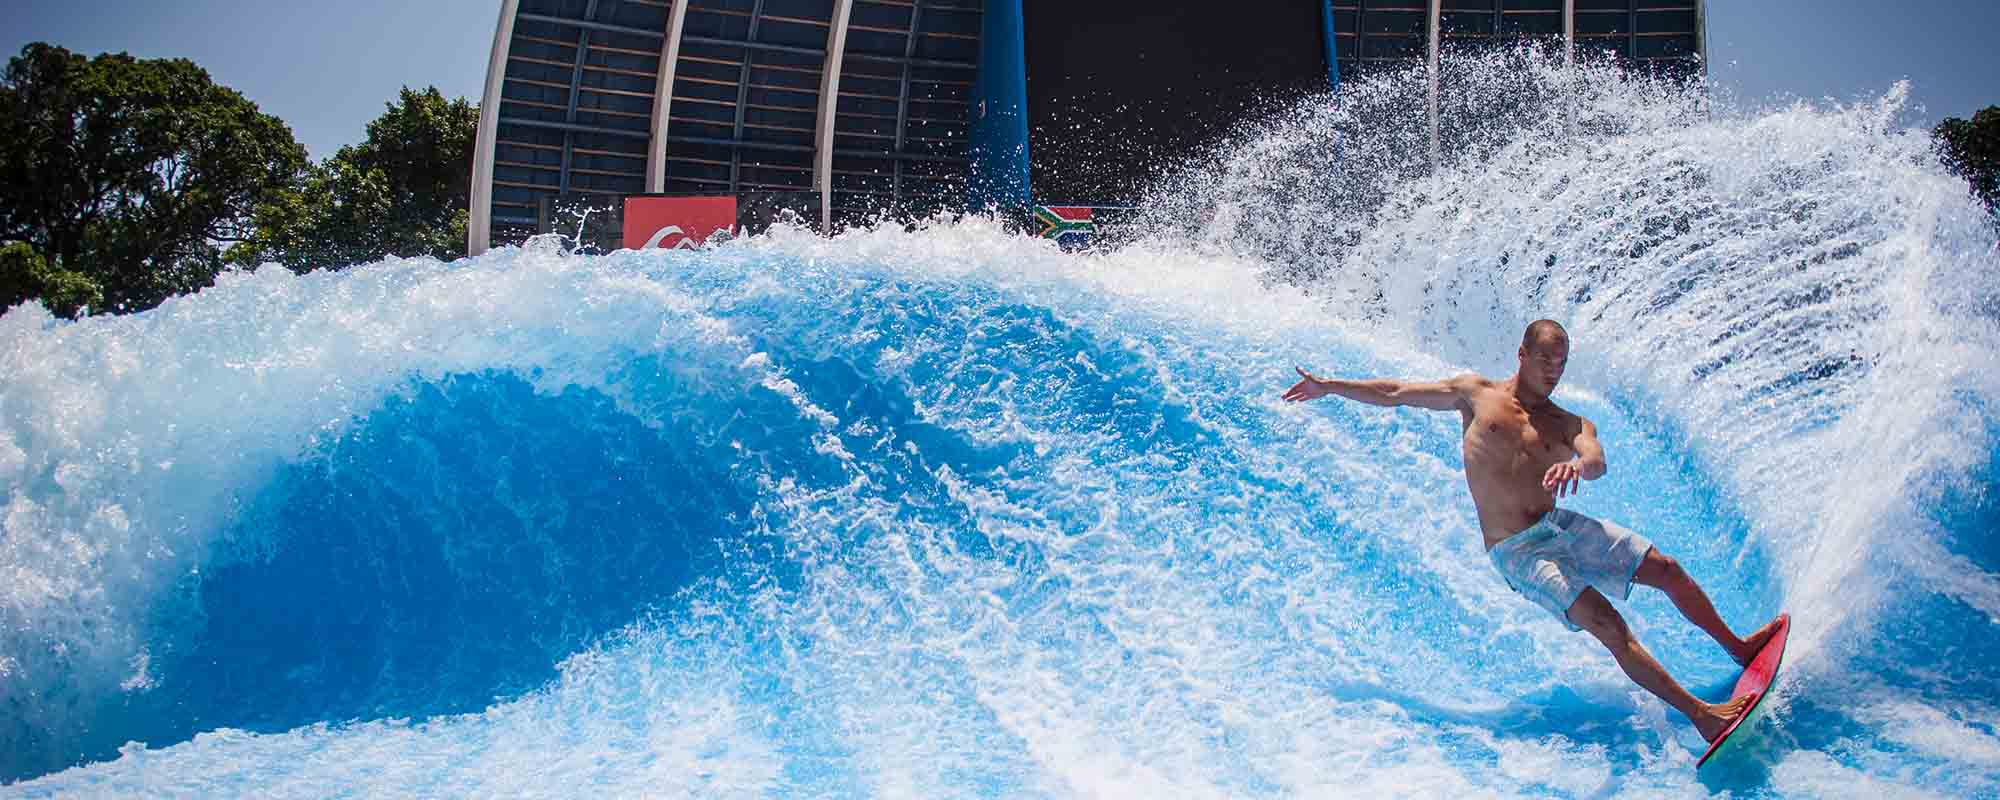 A man surfing on a giant wave on the flowrider